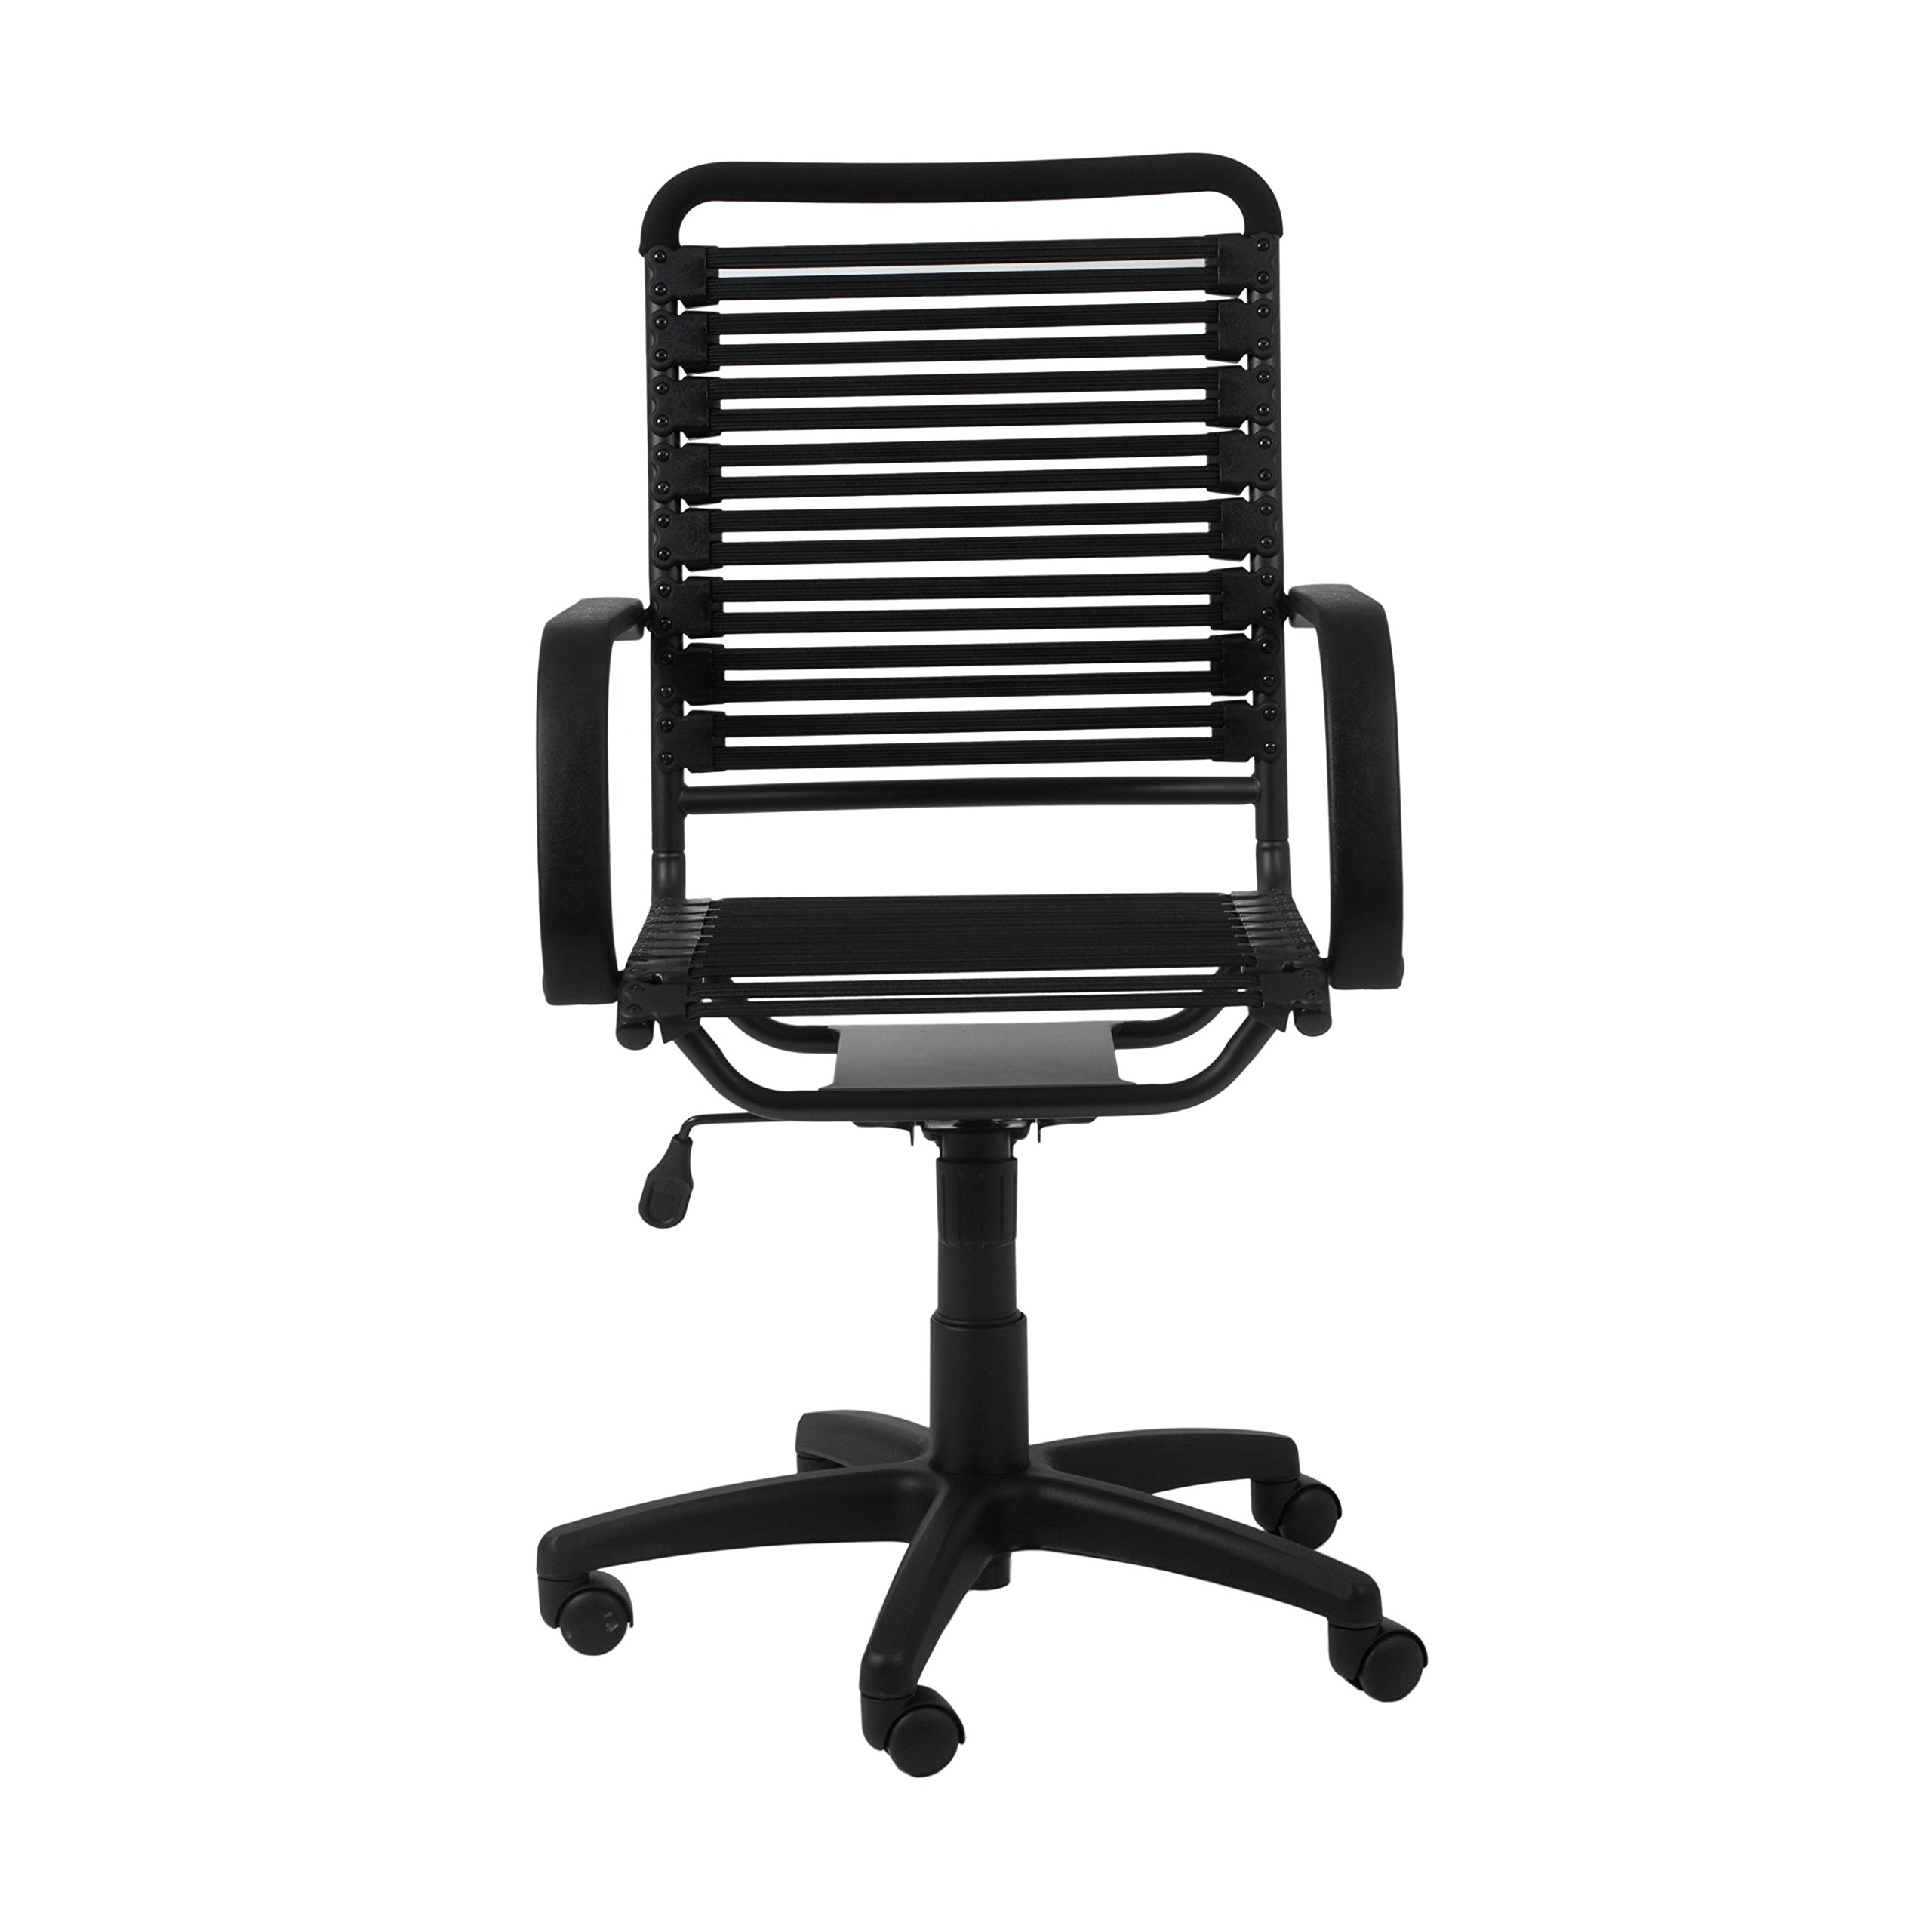 Euro Style Flat Bungie High Back Adjustable Office Chair with Arms, Black Bungies with Graphite Black Frame by Eurø Style